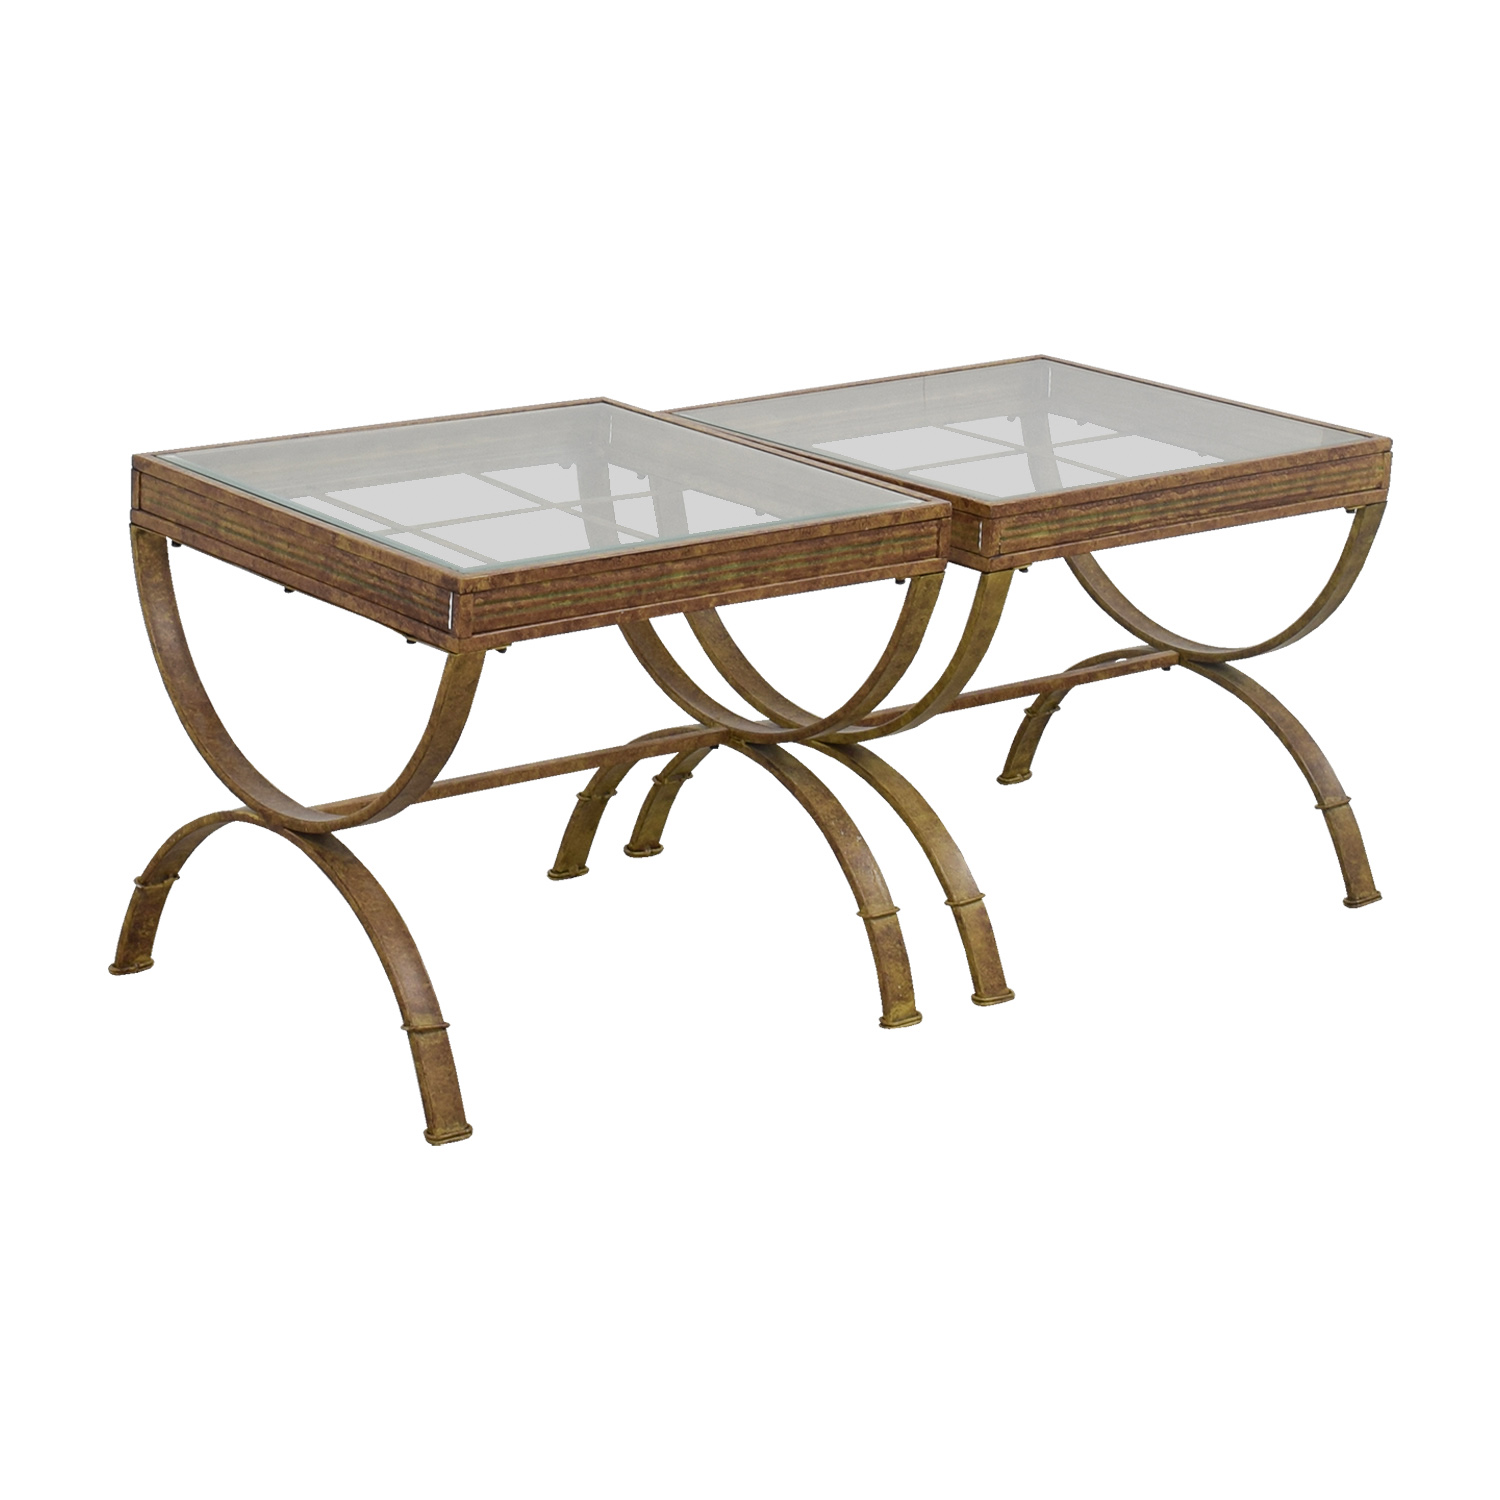 Bobs Furniture Brown and Glass End Tables / End Tables